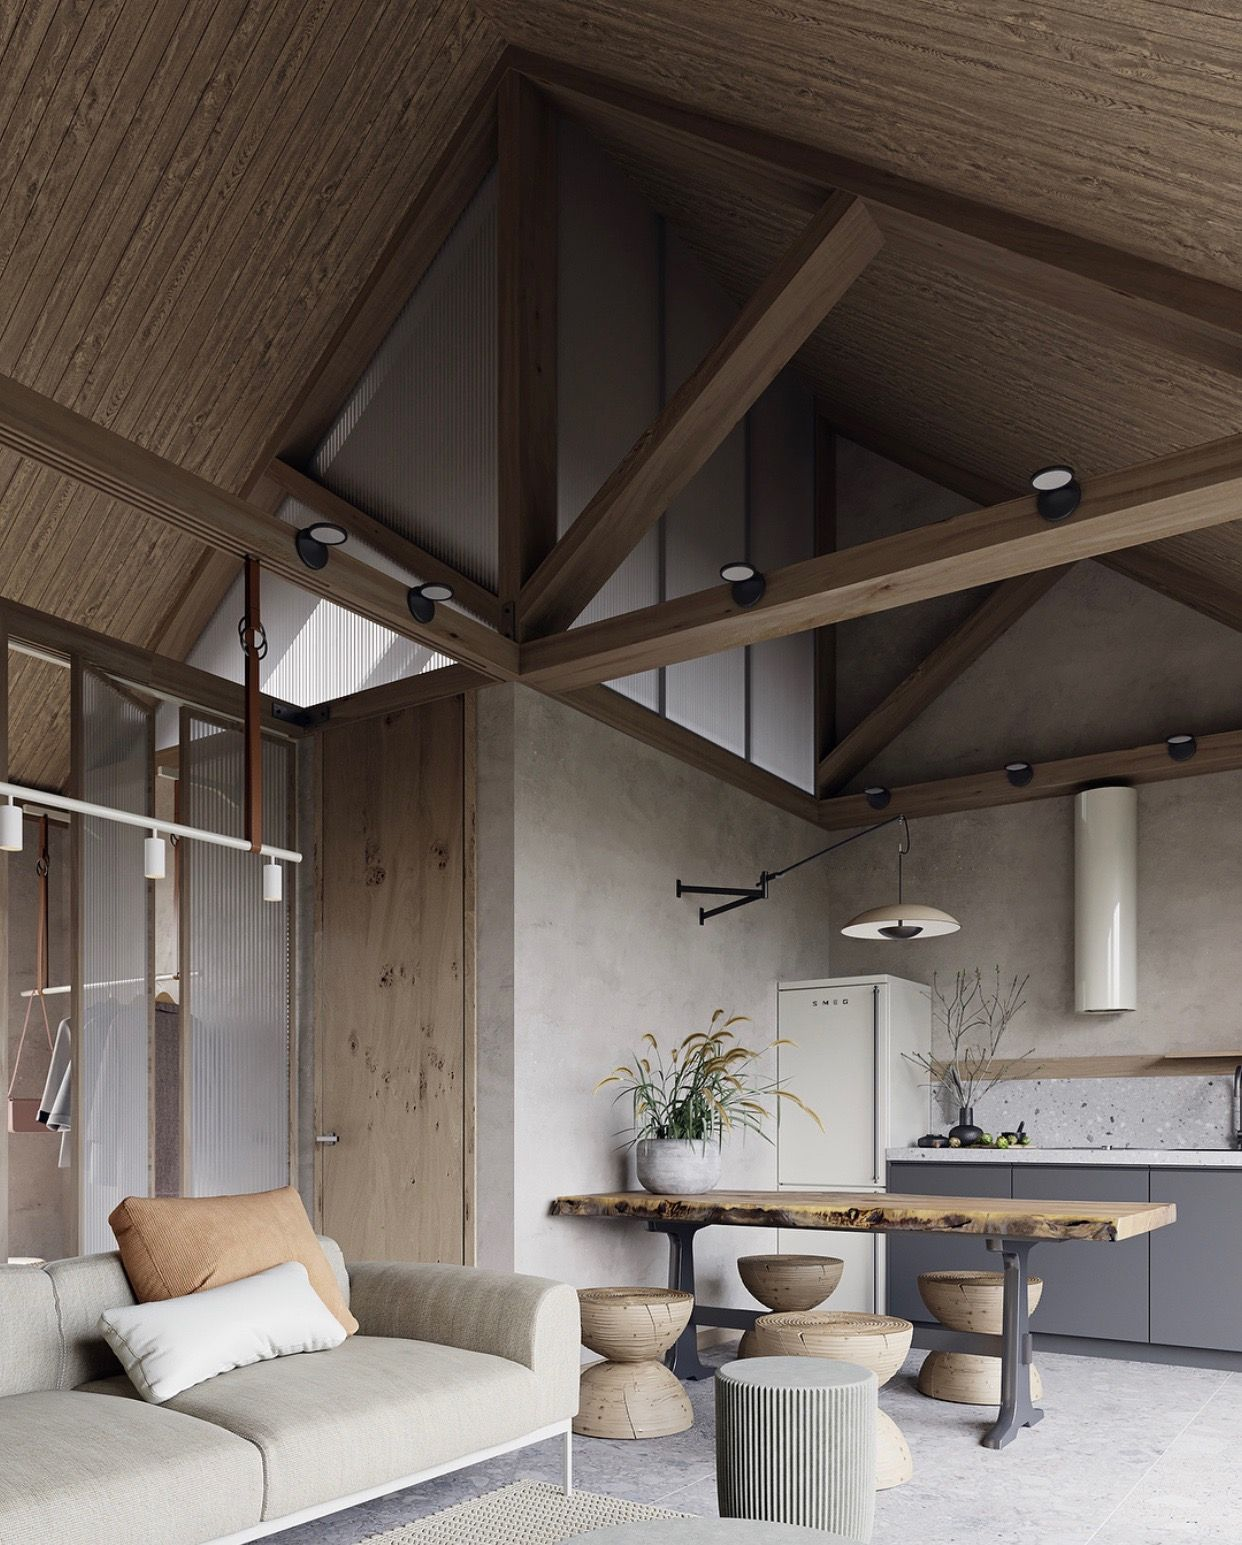 Loft interior design cute kitchen architecture interiors danish industrial also pin by   mclendon on residuals in house rh pinterest